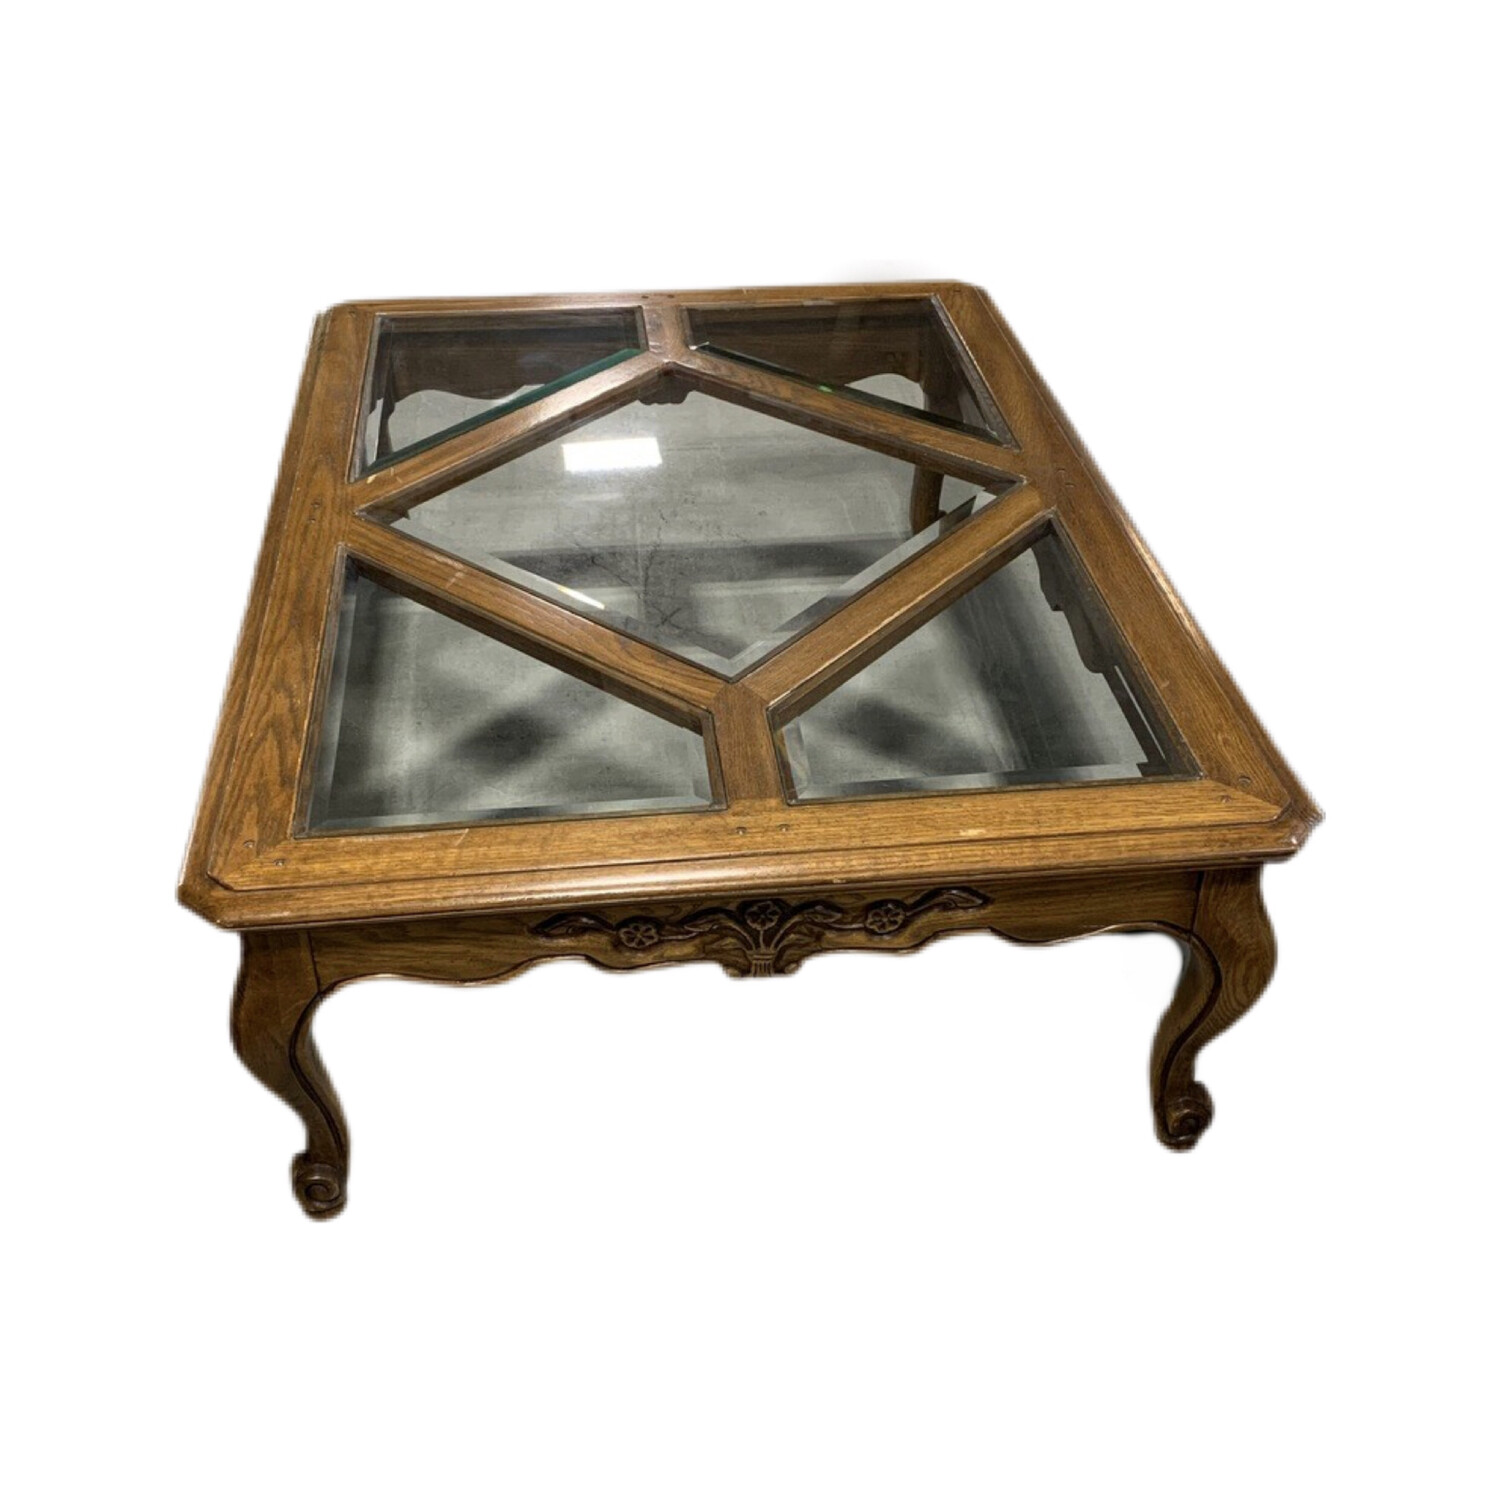 Wooden Table With 5 Pieces Of Glass